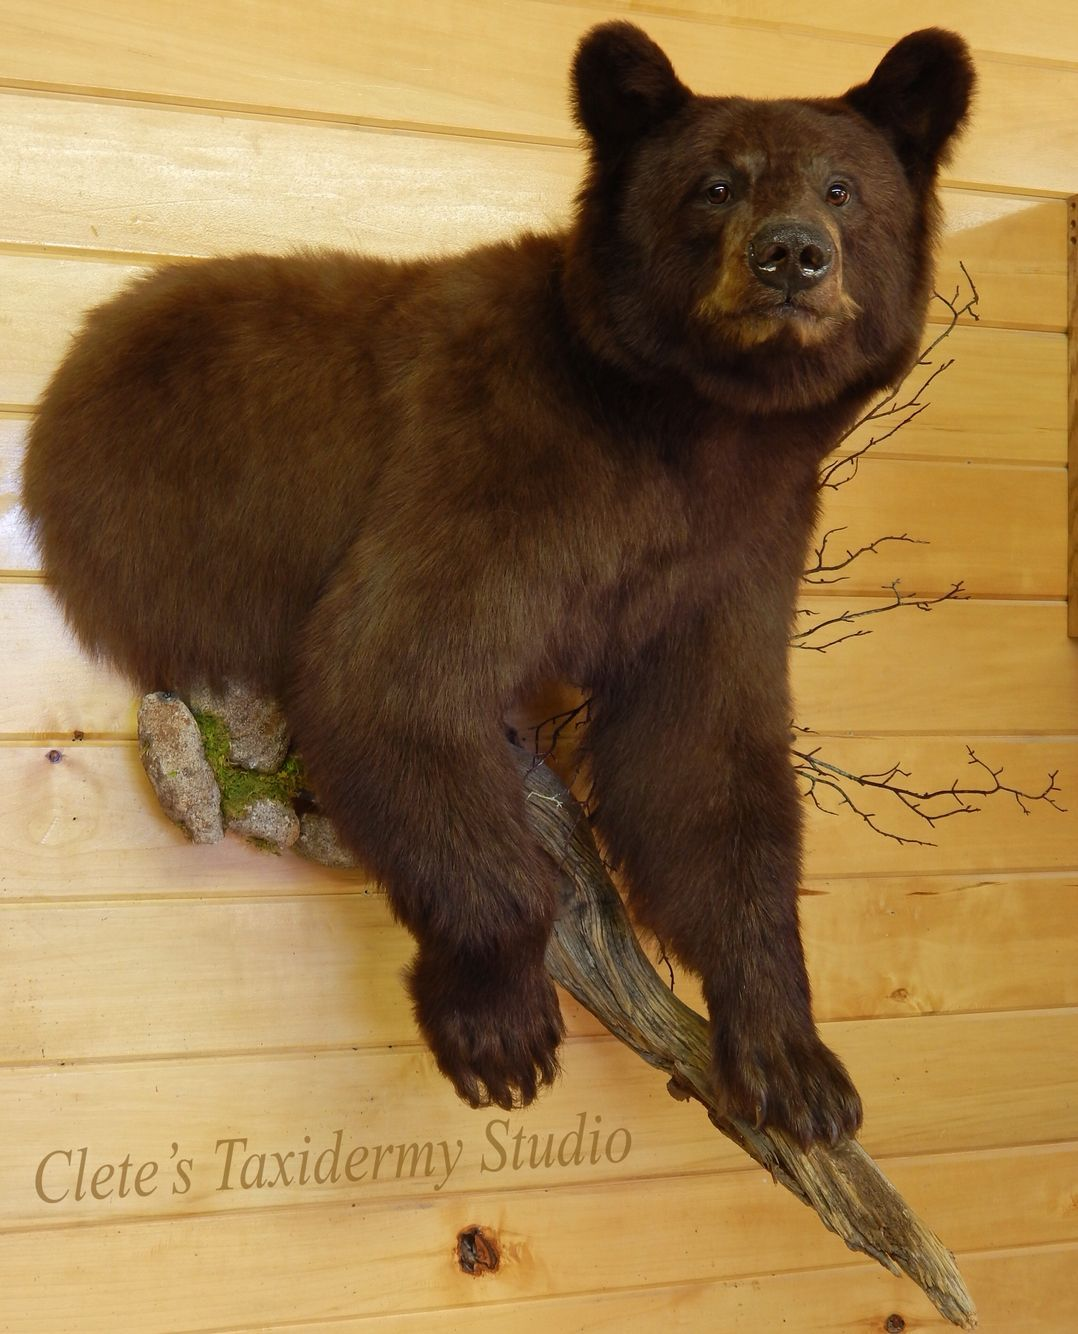 Full time master taxidermist in Ebensburg, PA Taxidermy